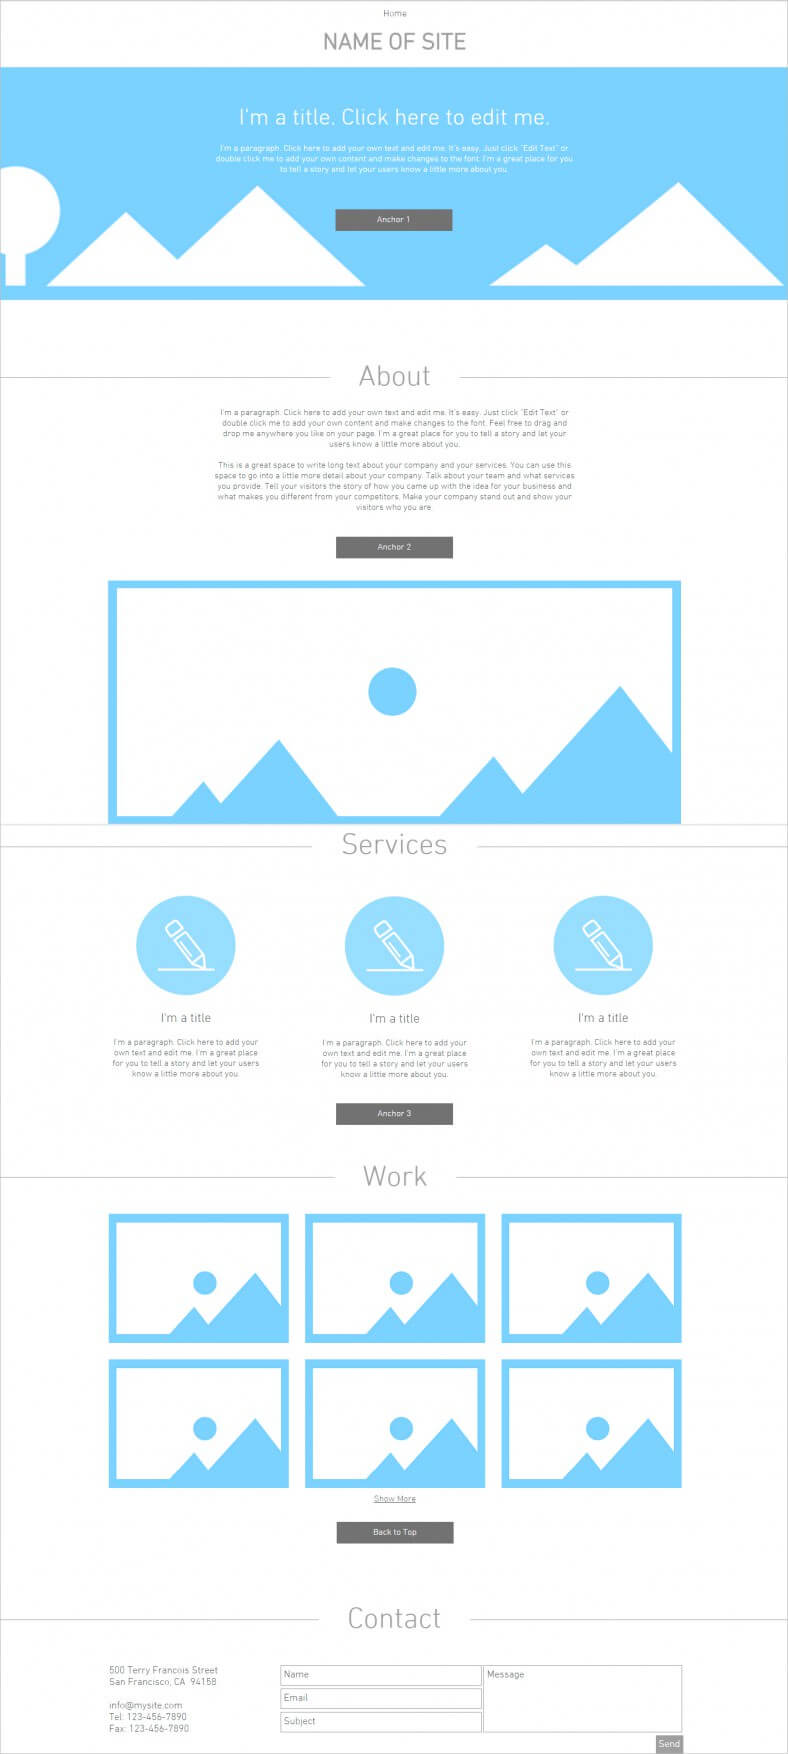 Blank Html5 Website Templates & Themes | Free & Premium in Html5 Blank Page Template